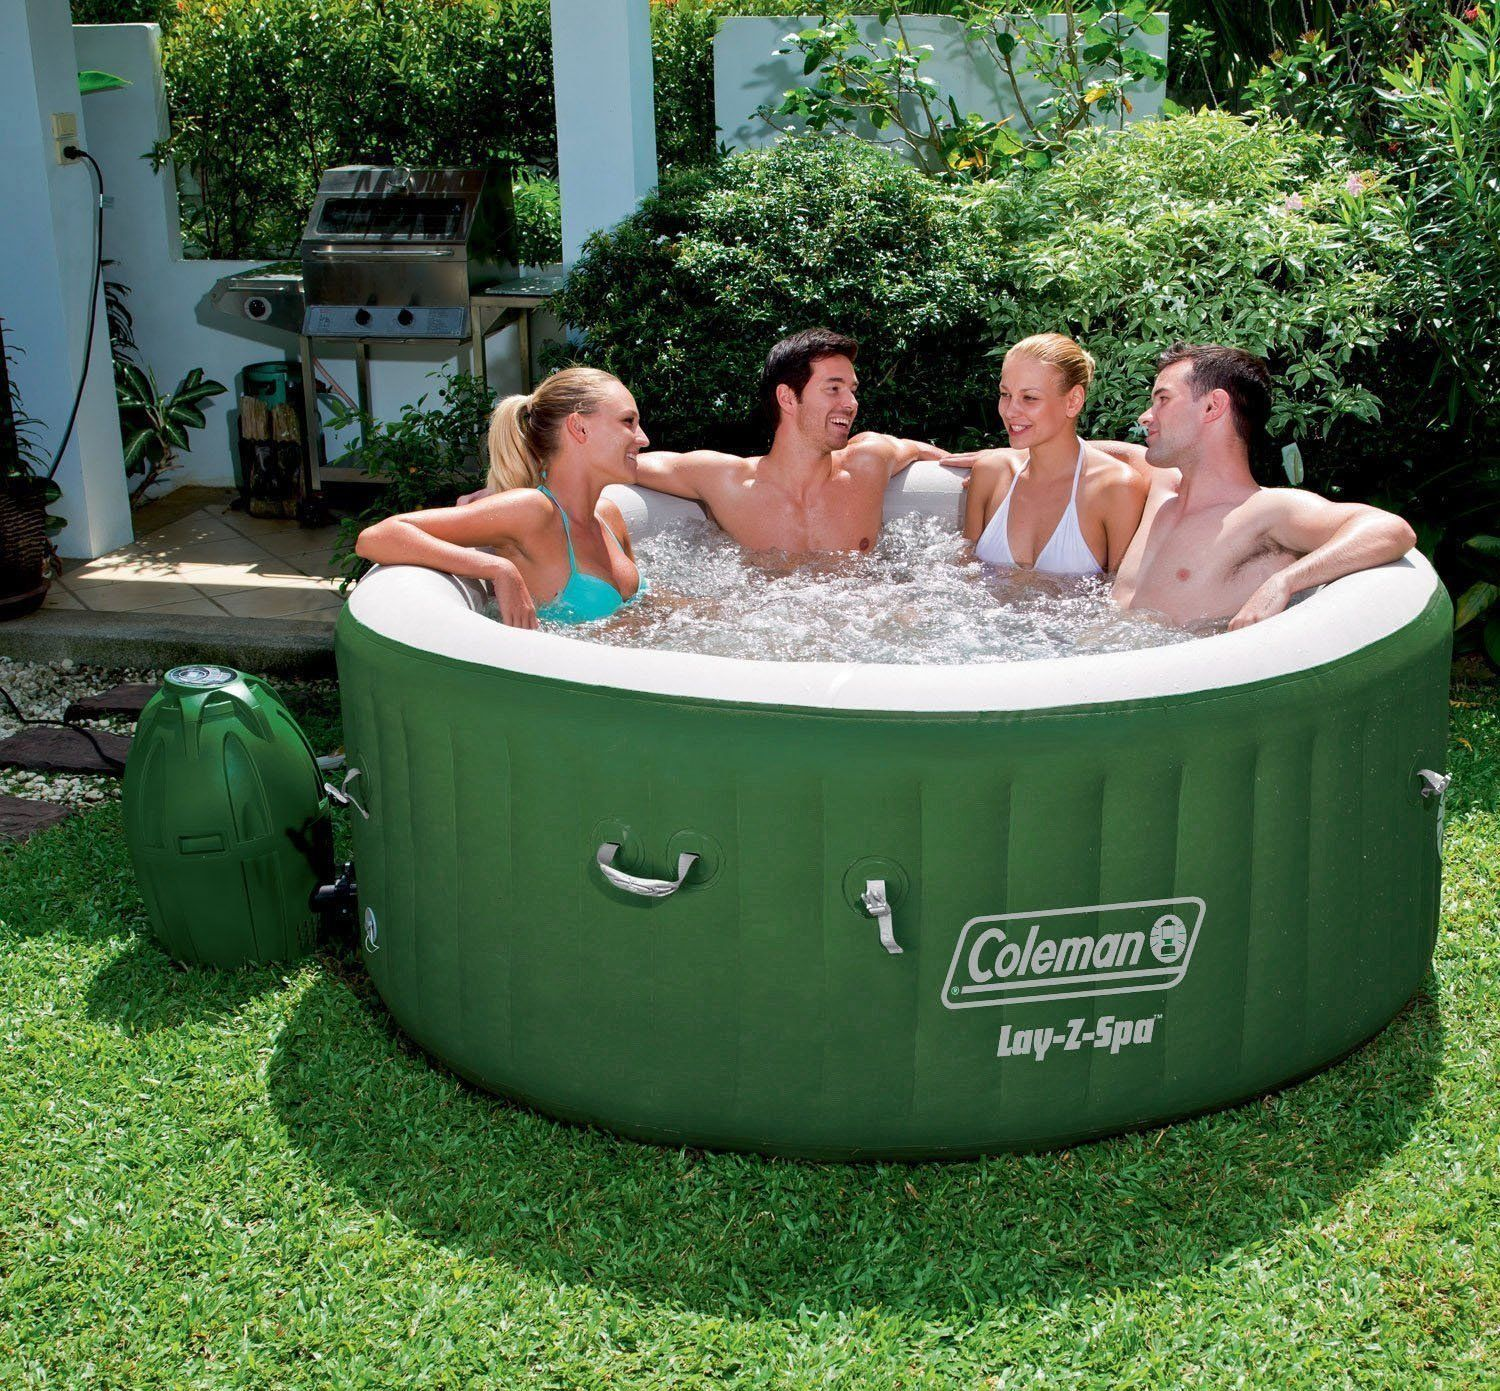 4-6 Person Capacity Inflatable Hot Tub | Outdoor & Tools | Pinterest ...